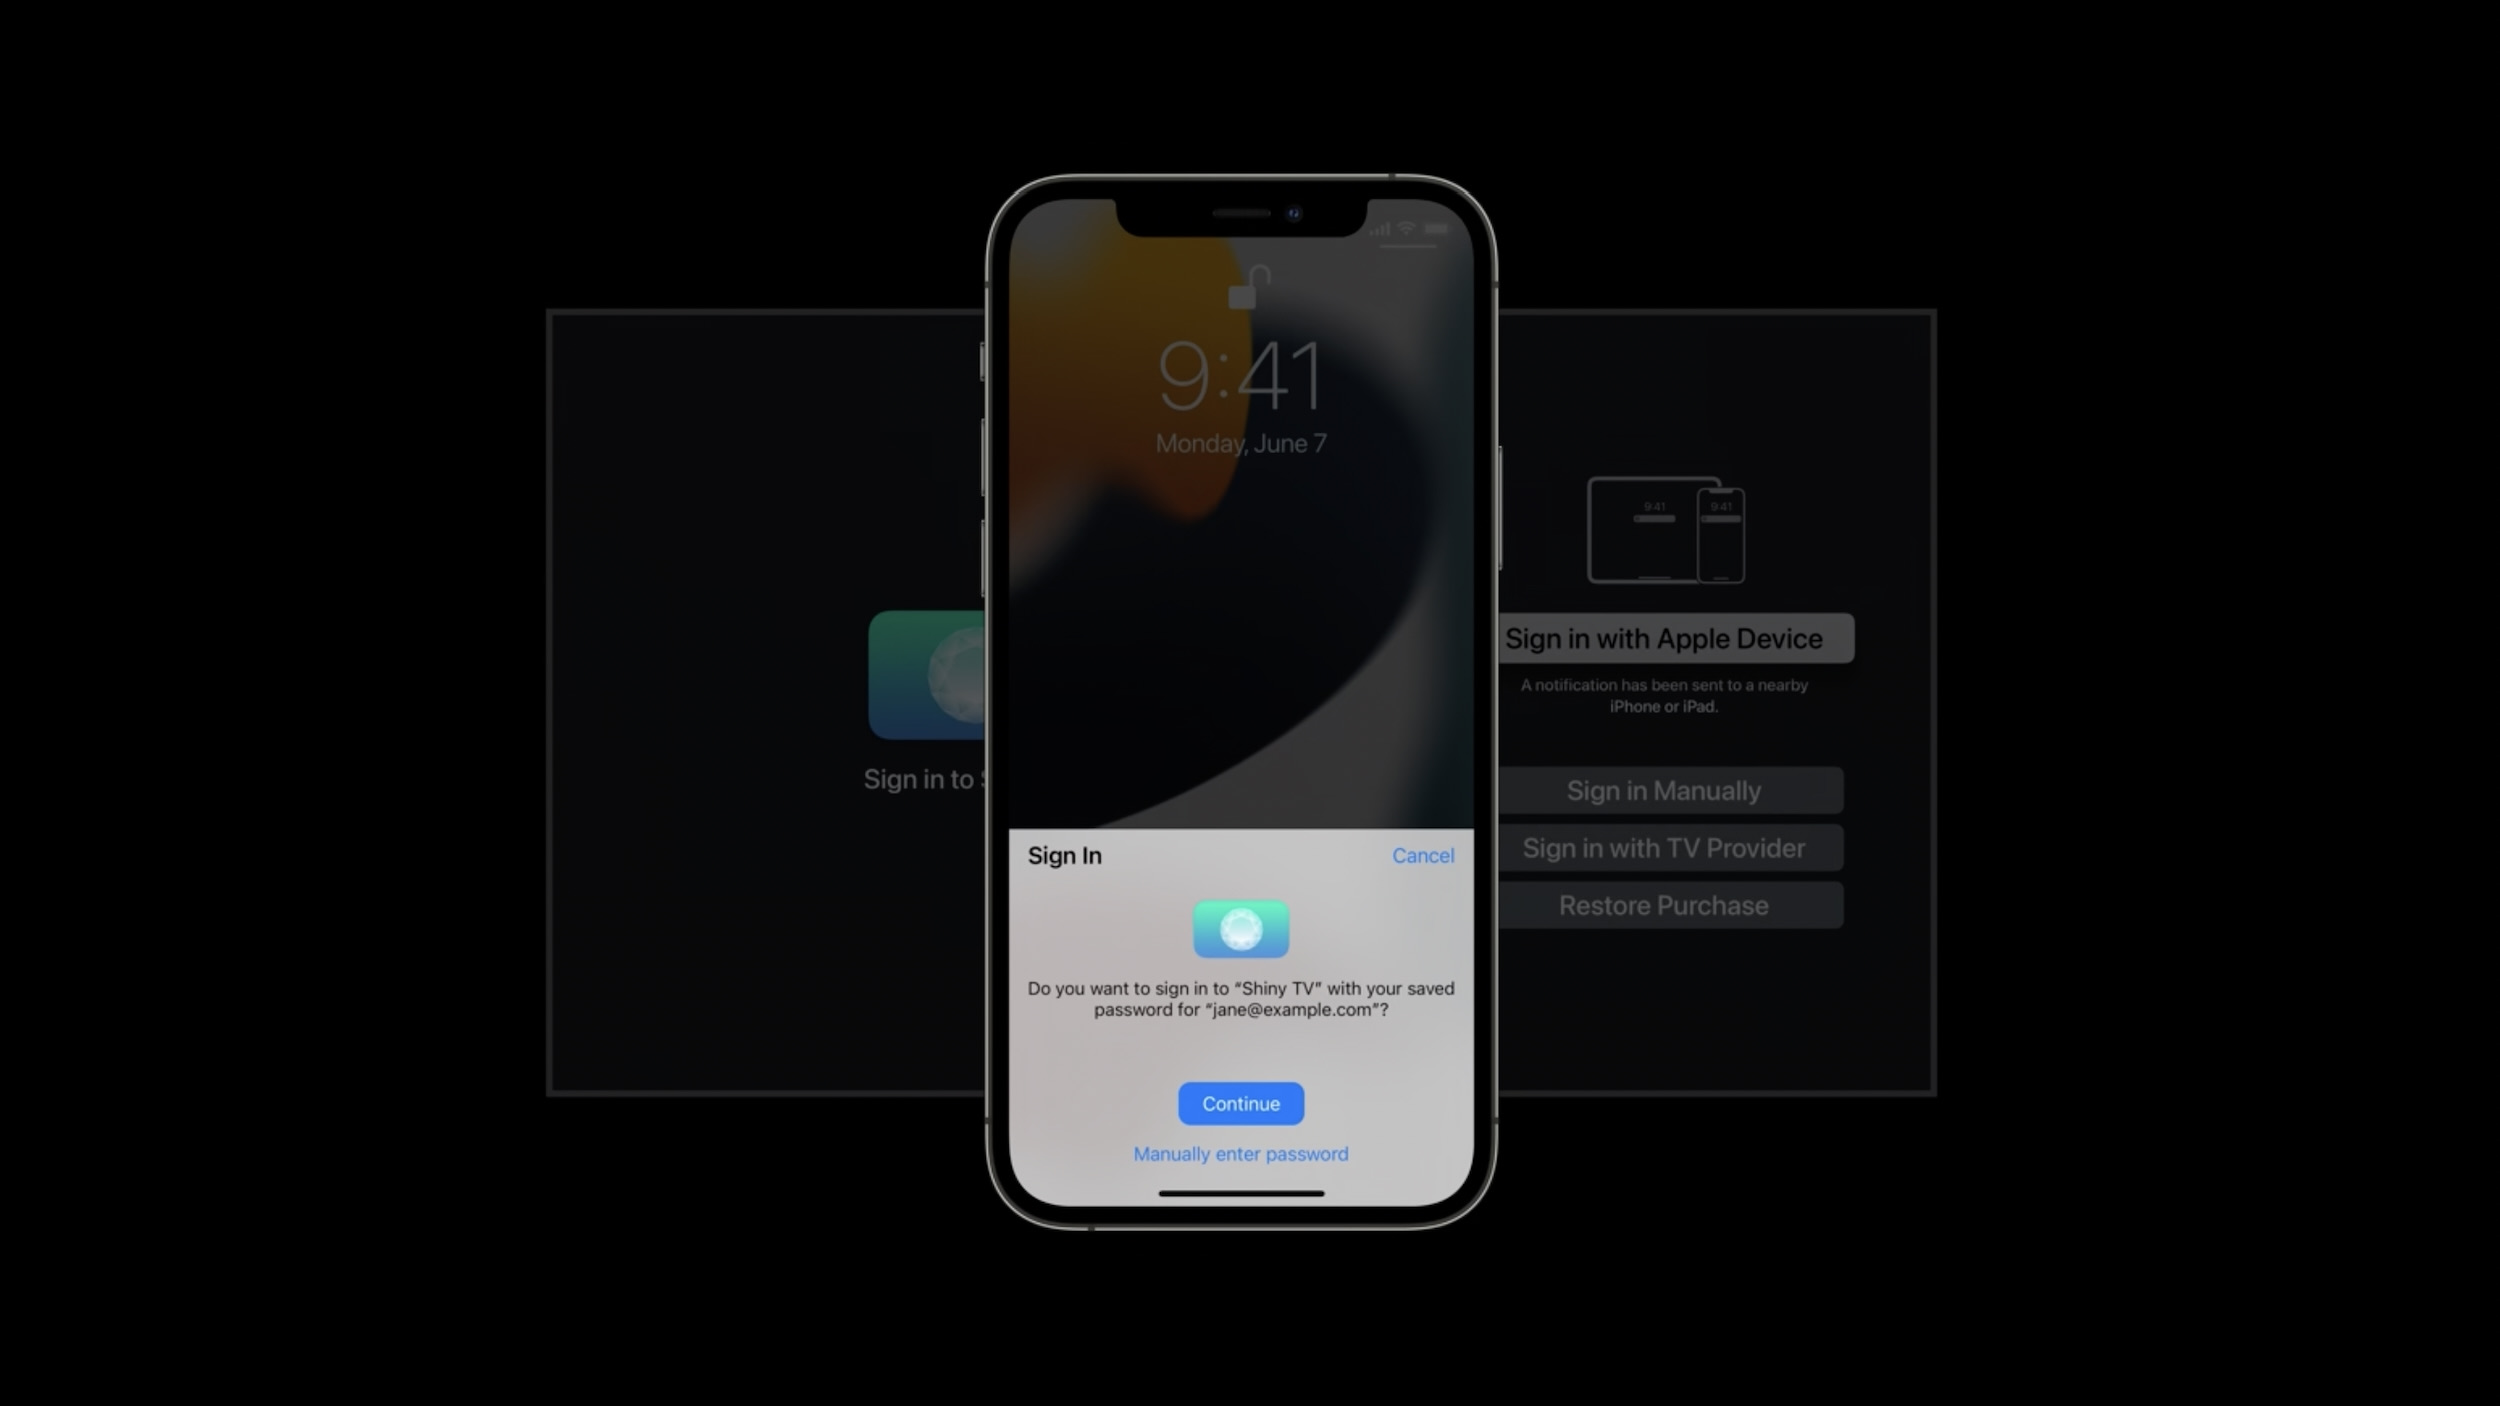 Log in/ signup using Touch ID or Face ID